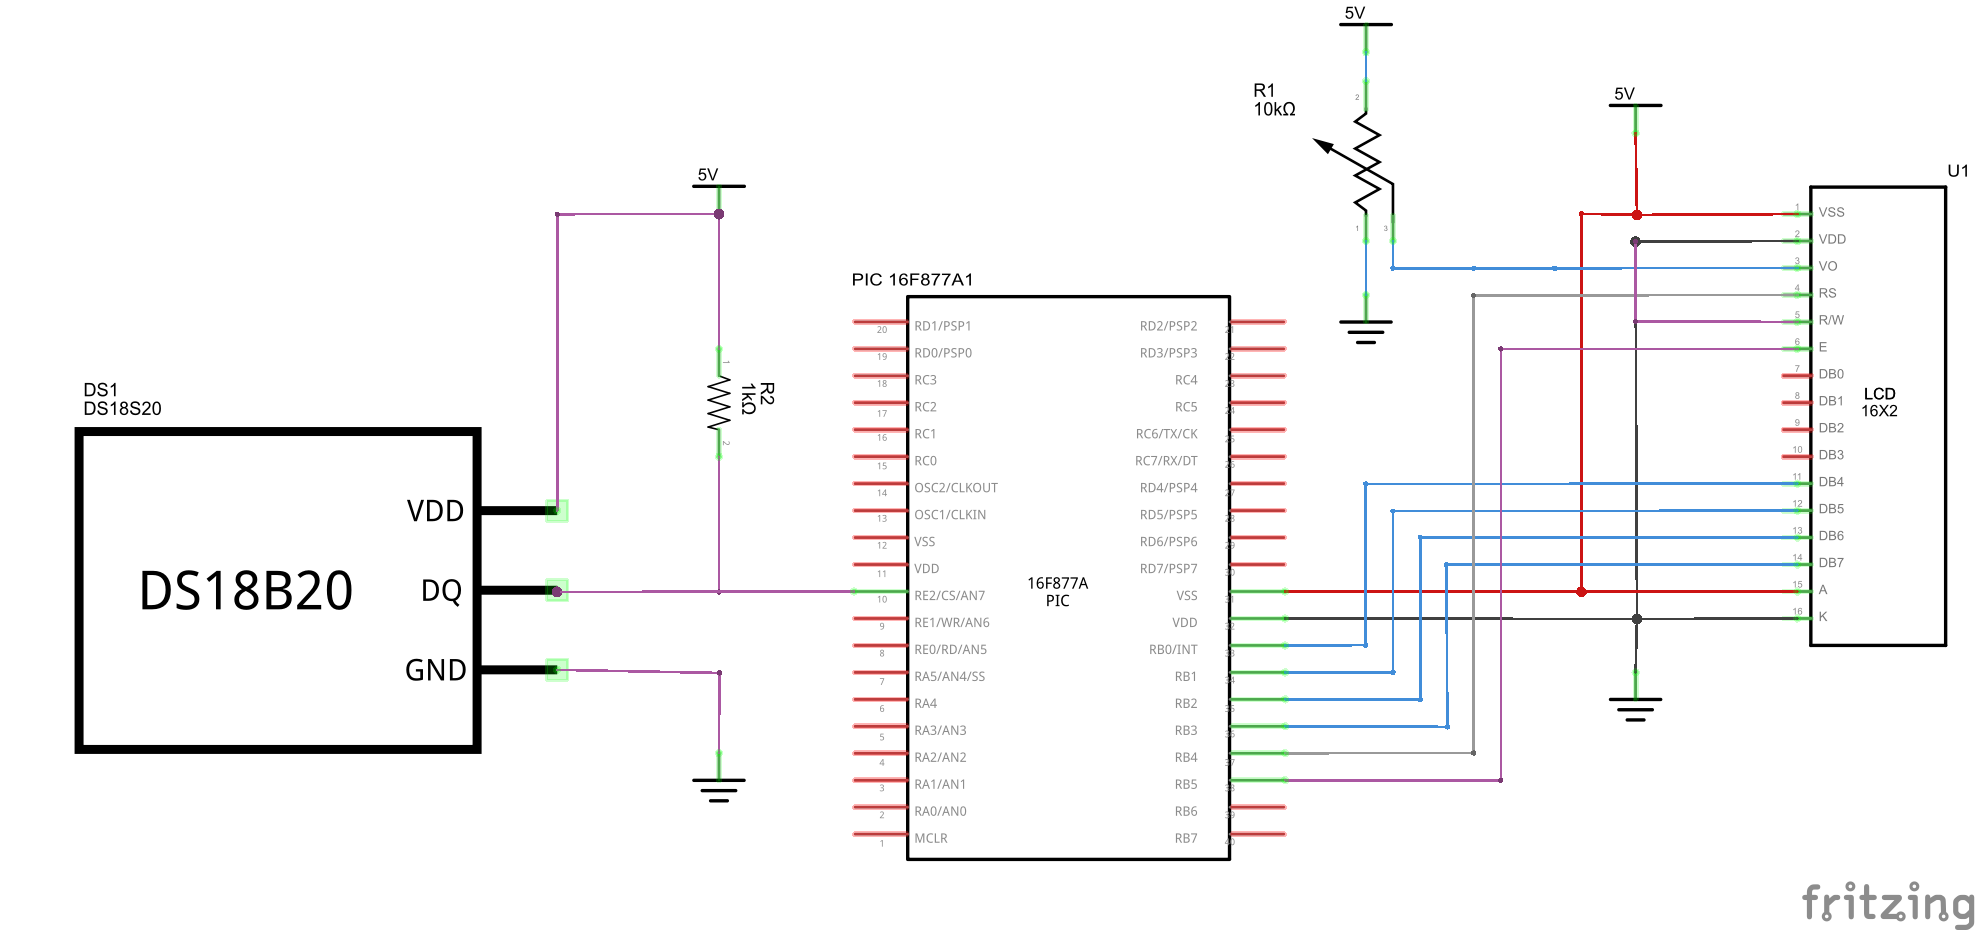 PIC16F877 DS1820 schematic